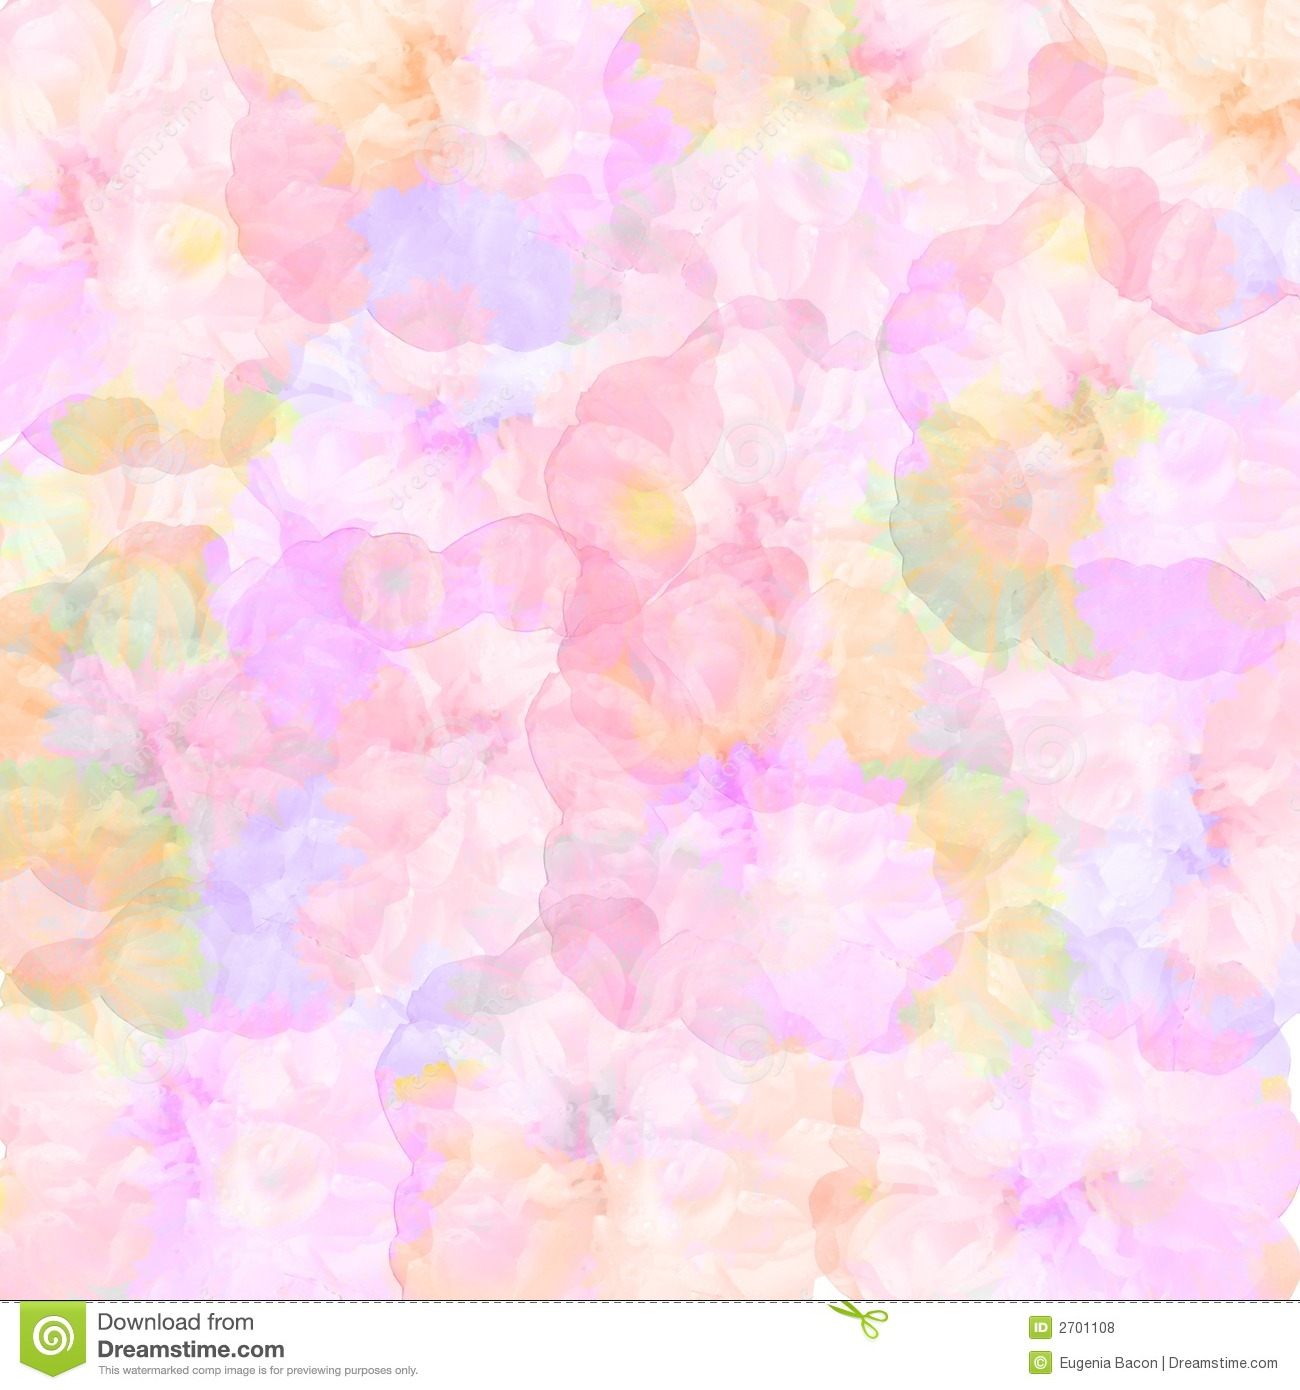 I Love You Animation Wallpaper Soft Rainbow Coloured Roses Royalty Free Stock Photos